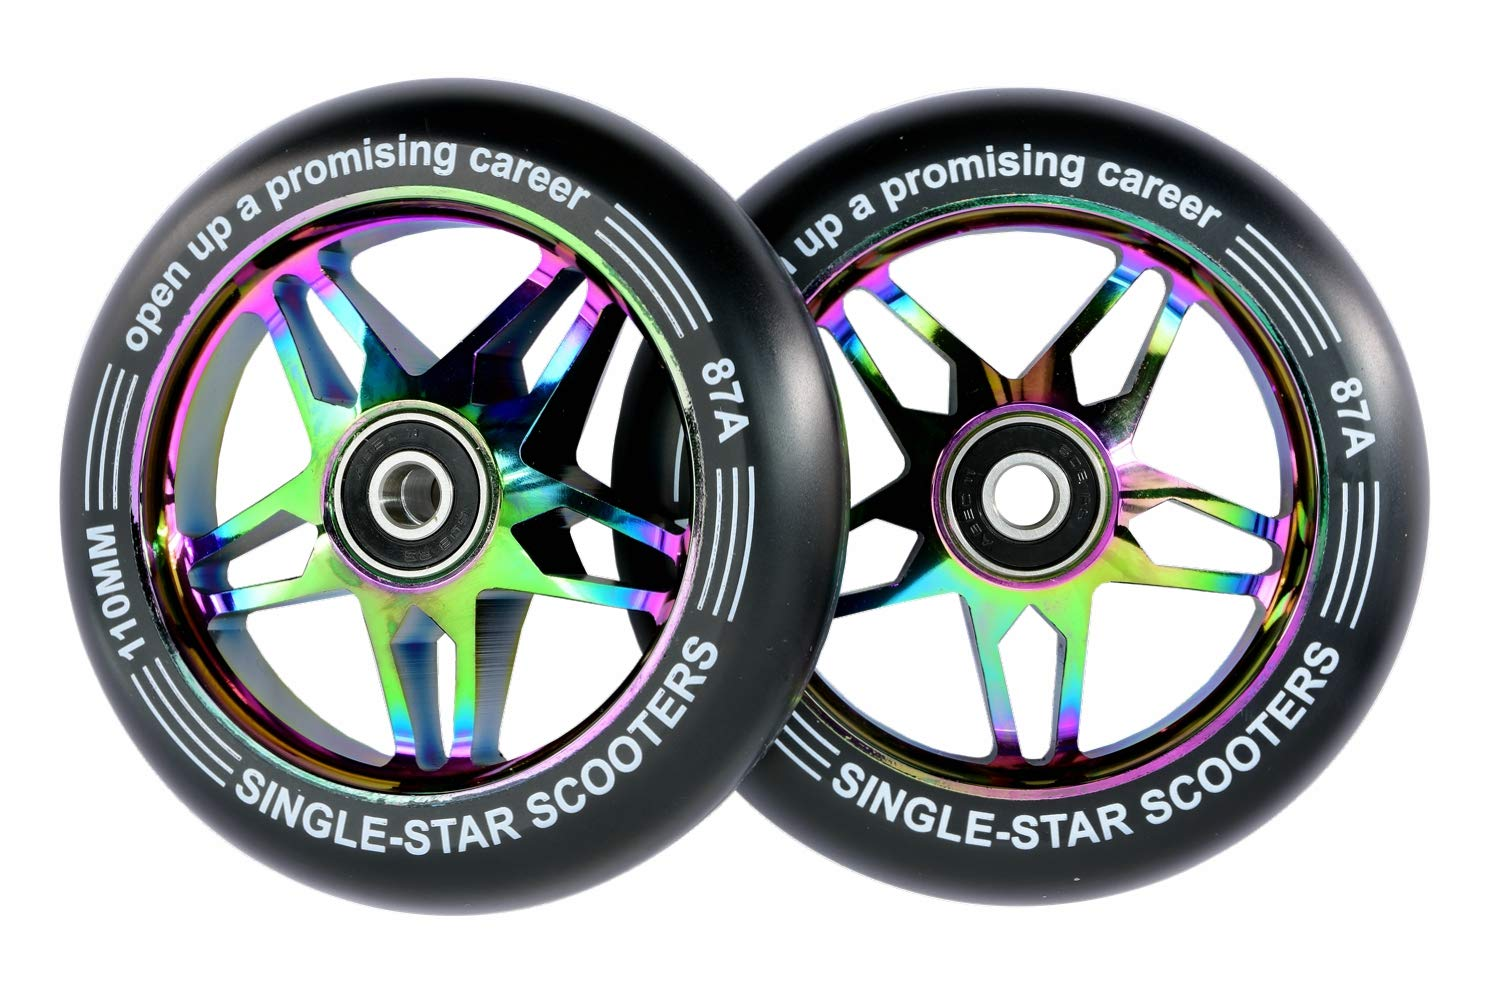 SINGLE-STAR Star Core Scooter Replacement Wheel 110mm Pro Stunt Scooter Wheels Packed 2PCS (Black/Neo)